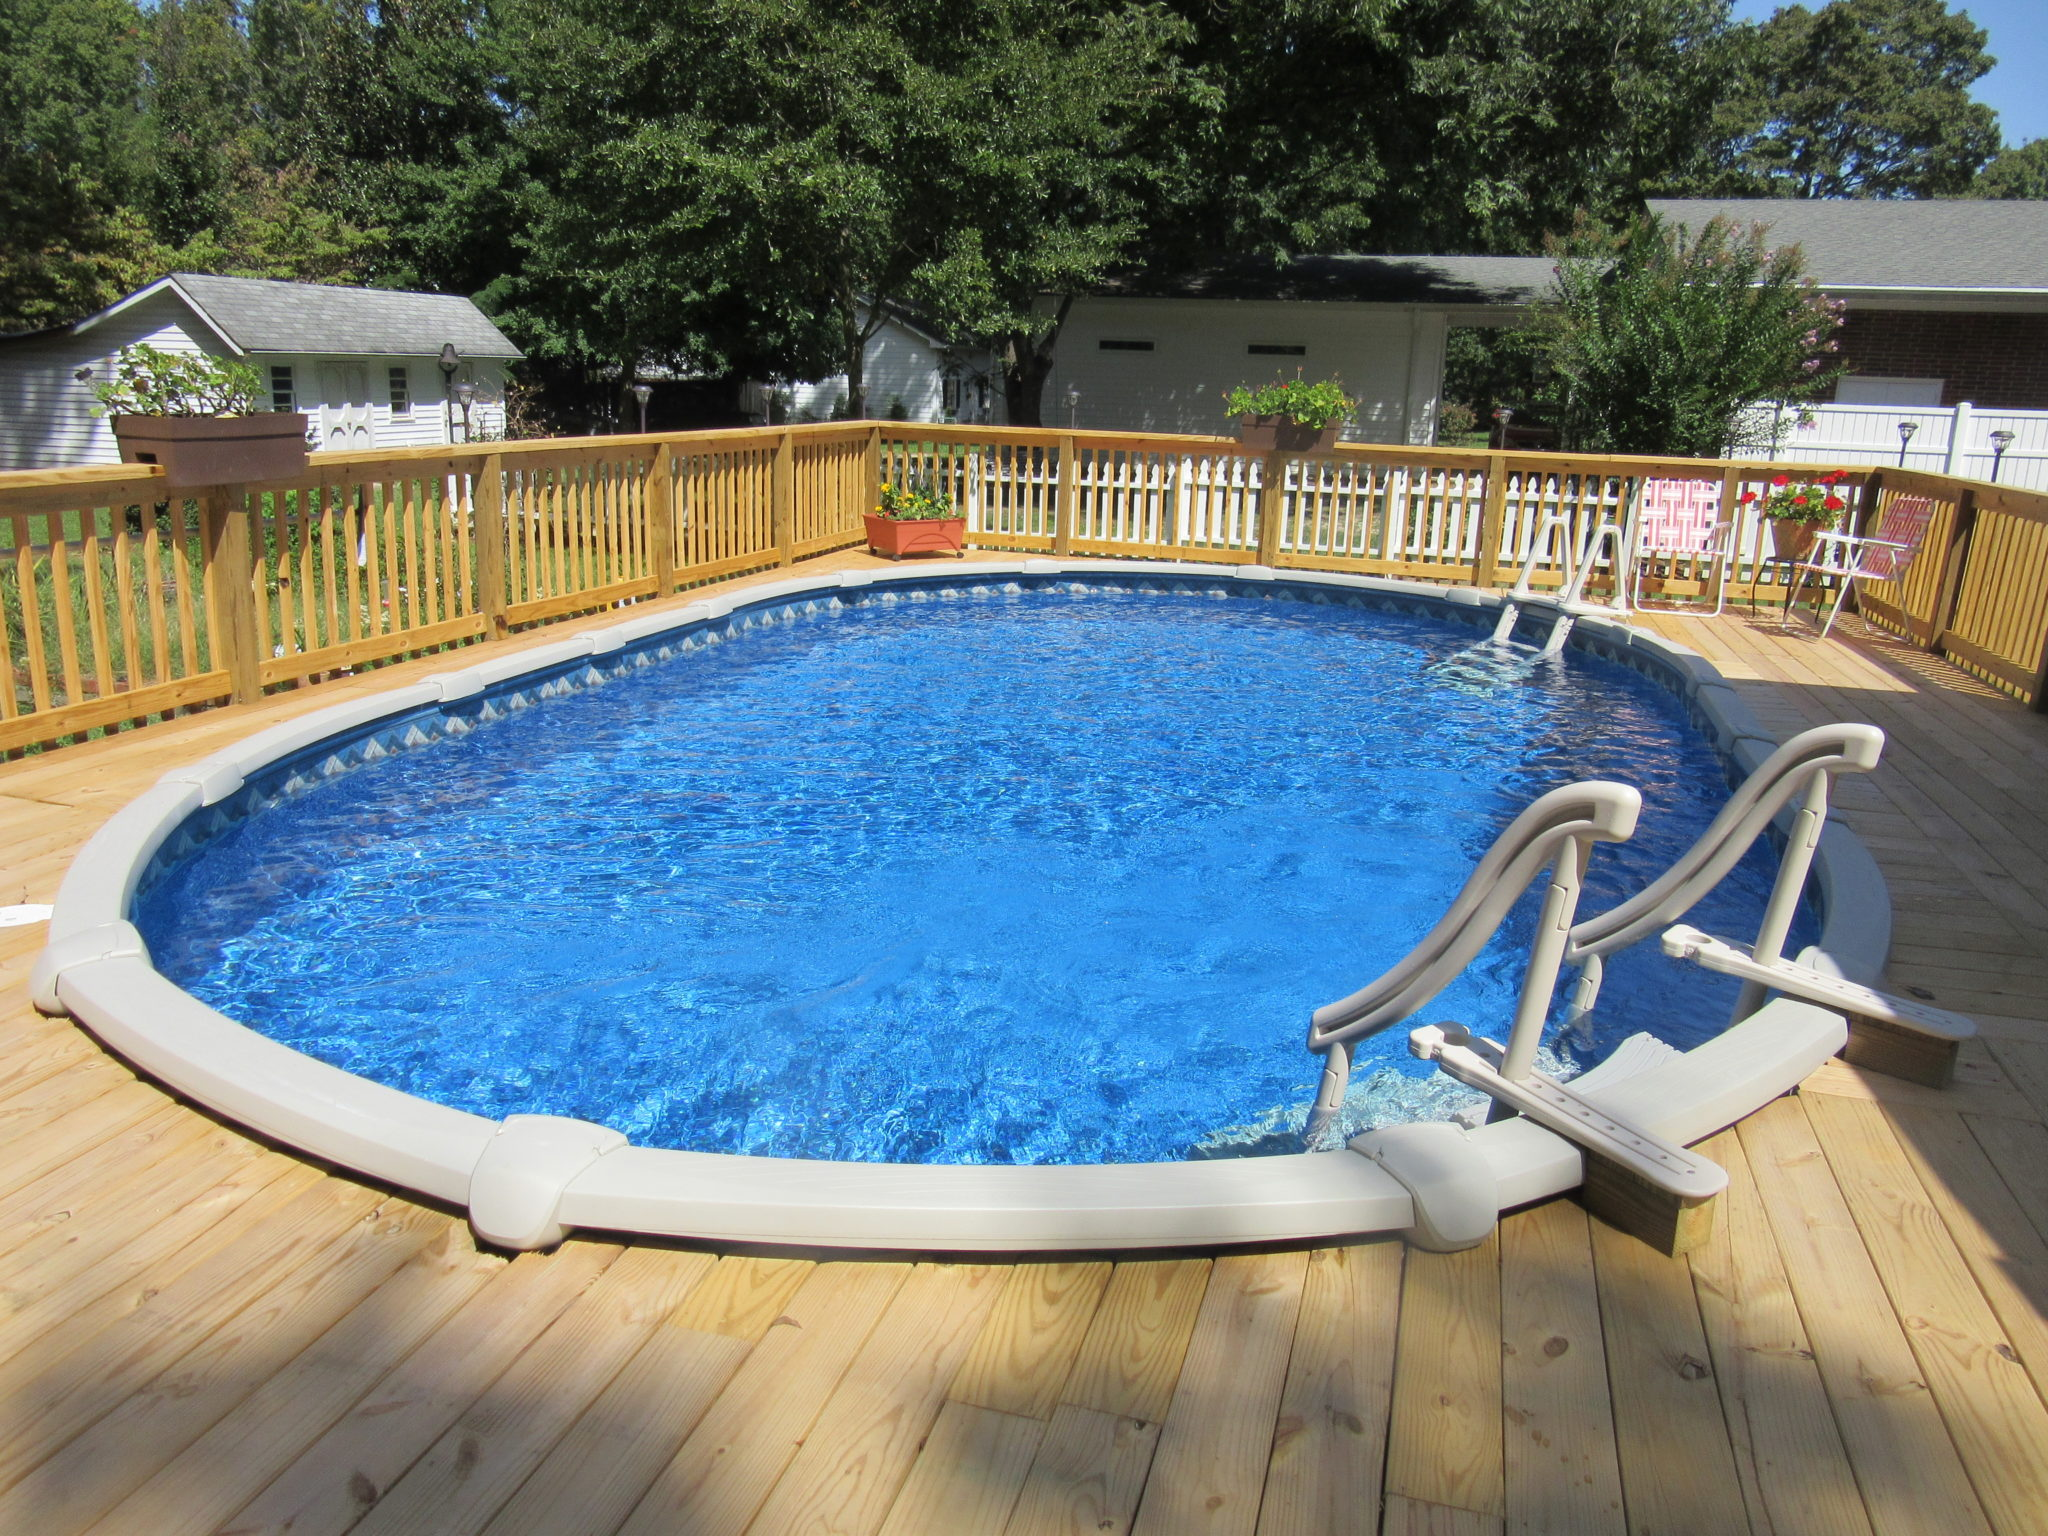 above ground pool ... aboveground pool areas. we hope you enjoy looking through some of GOTBYRS